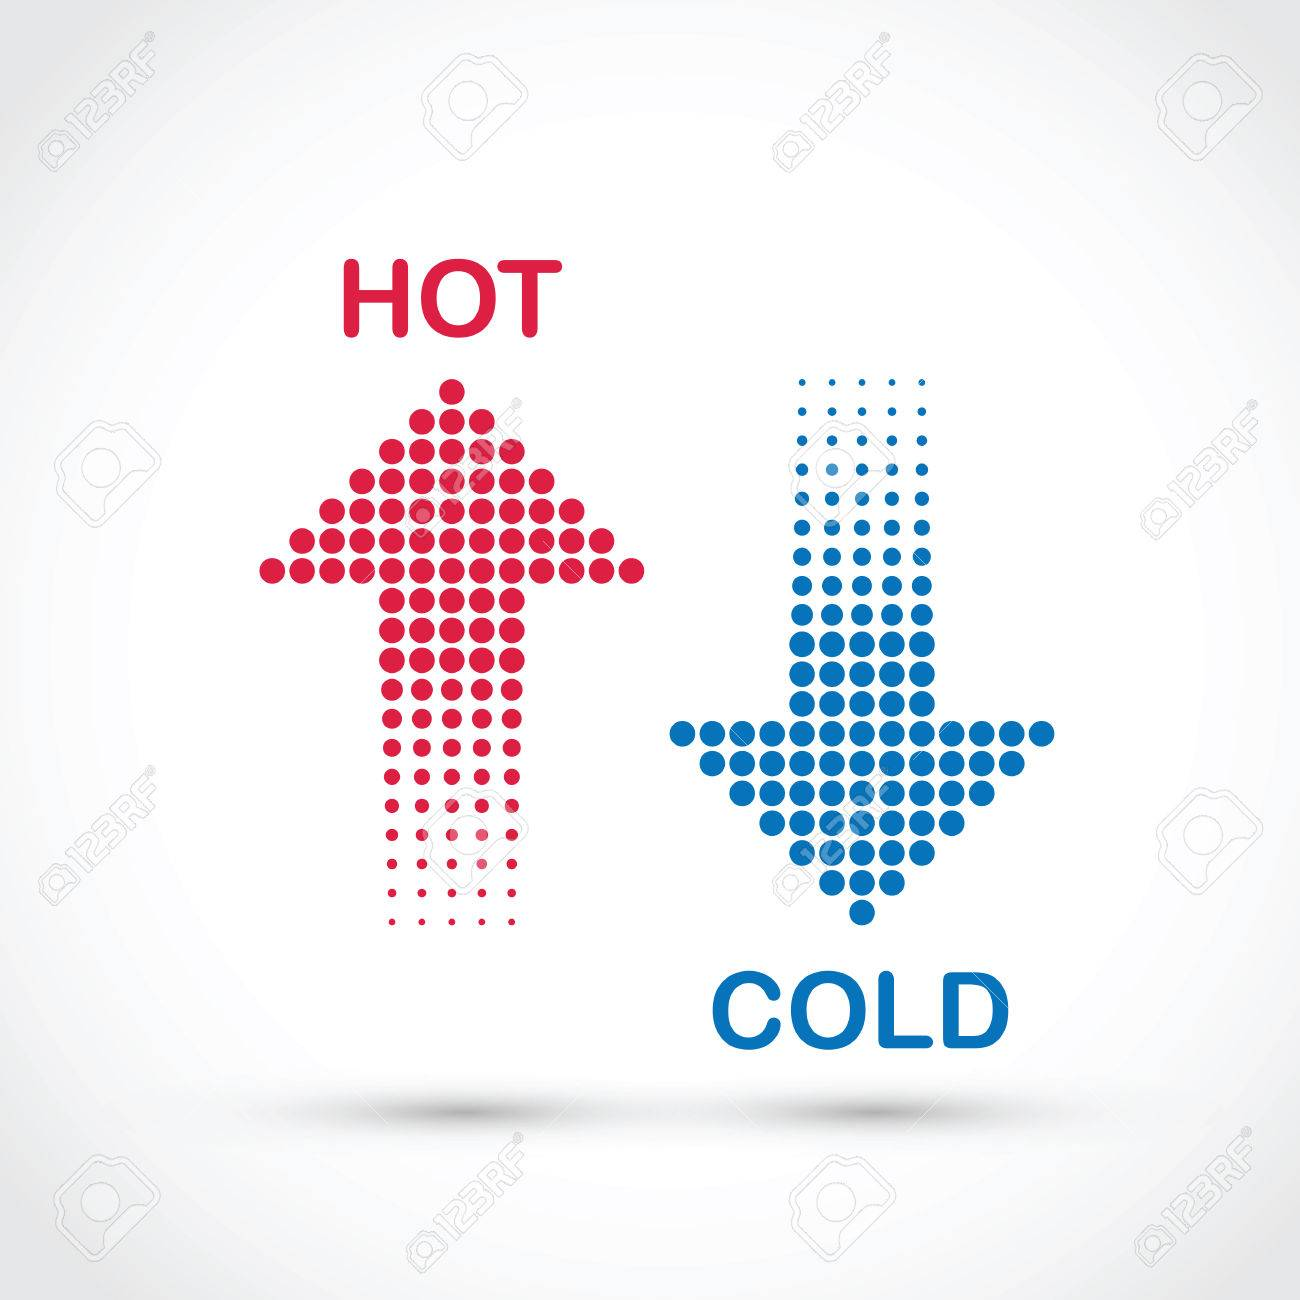 hot and cold Banque d'images - 49813635